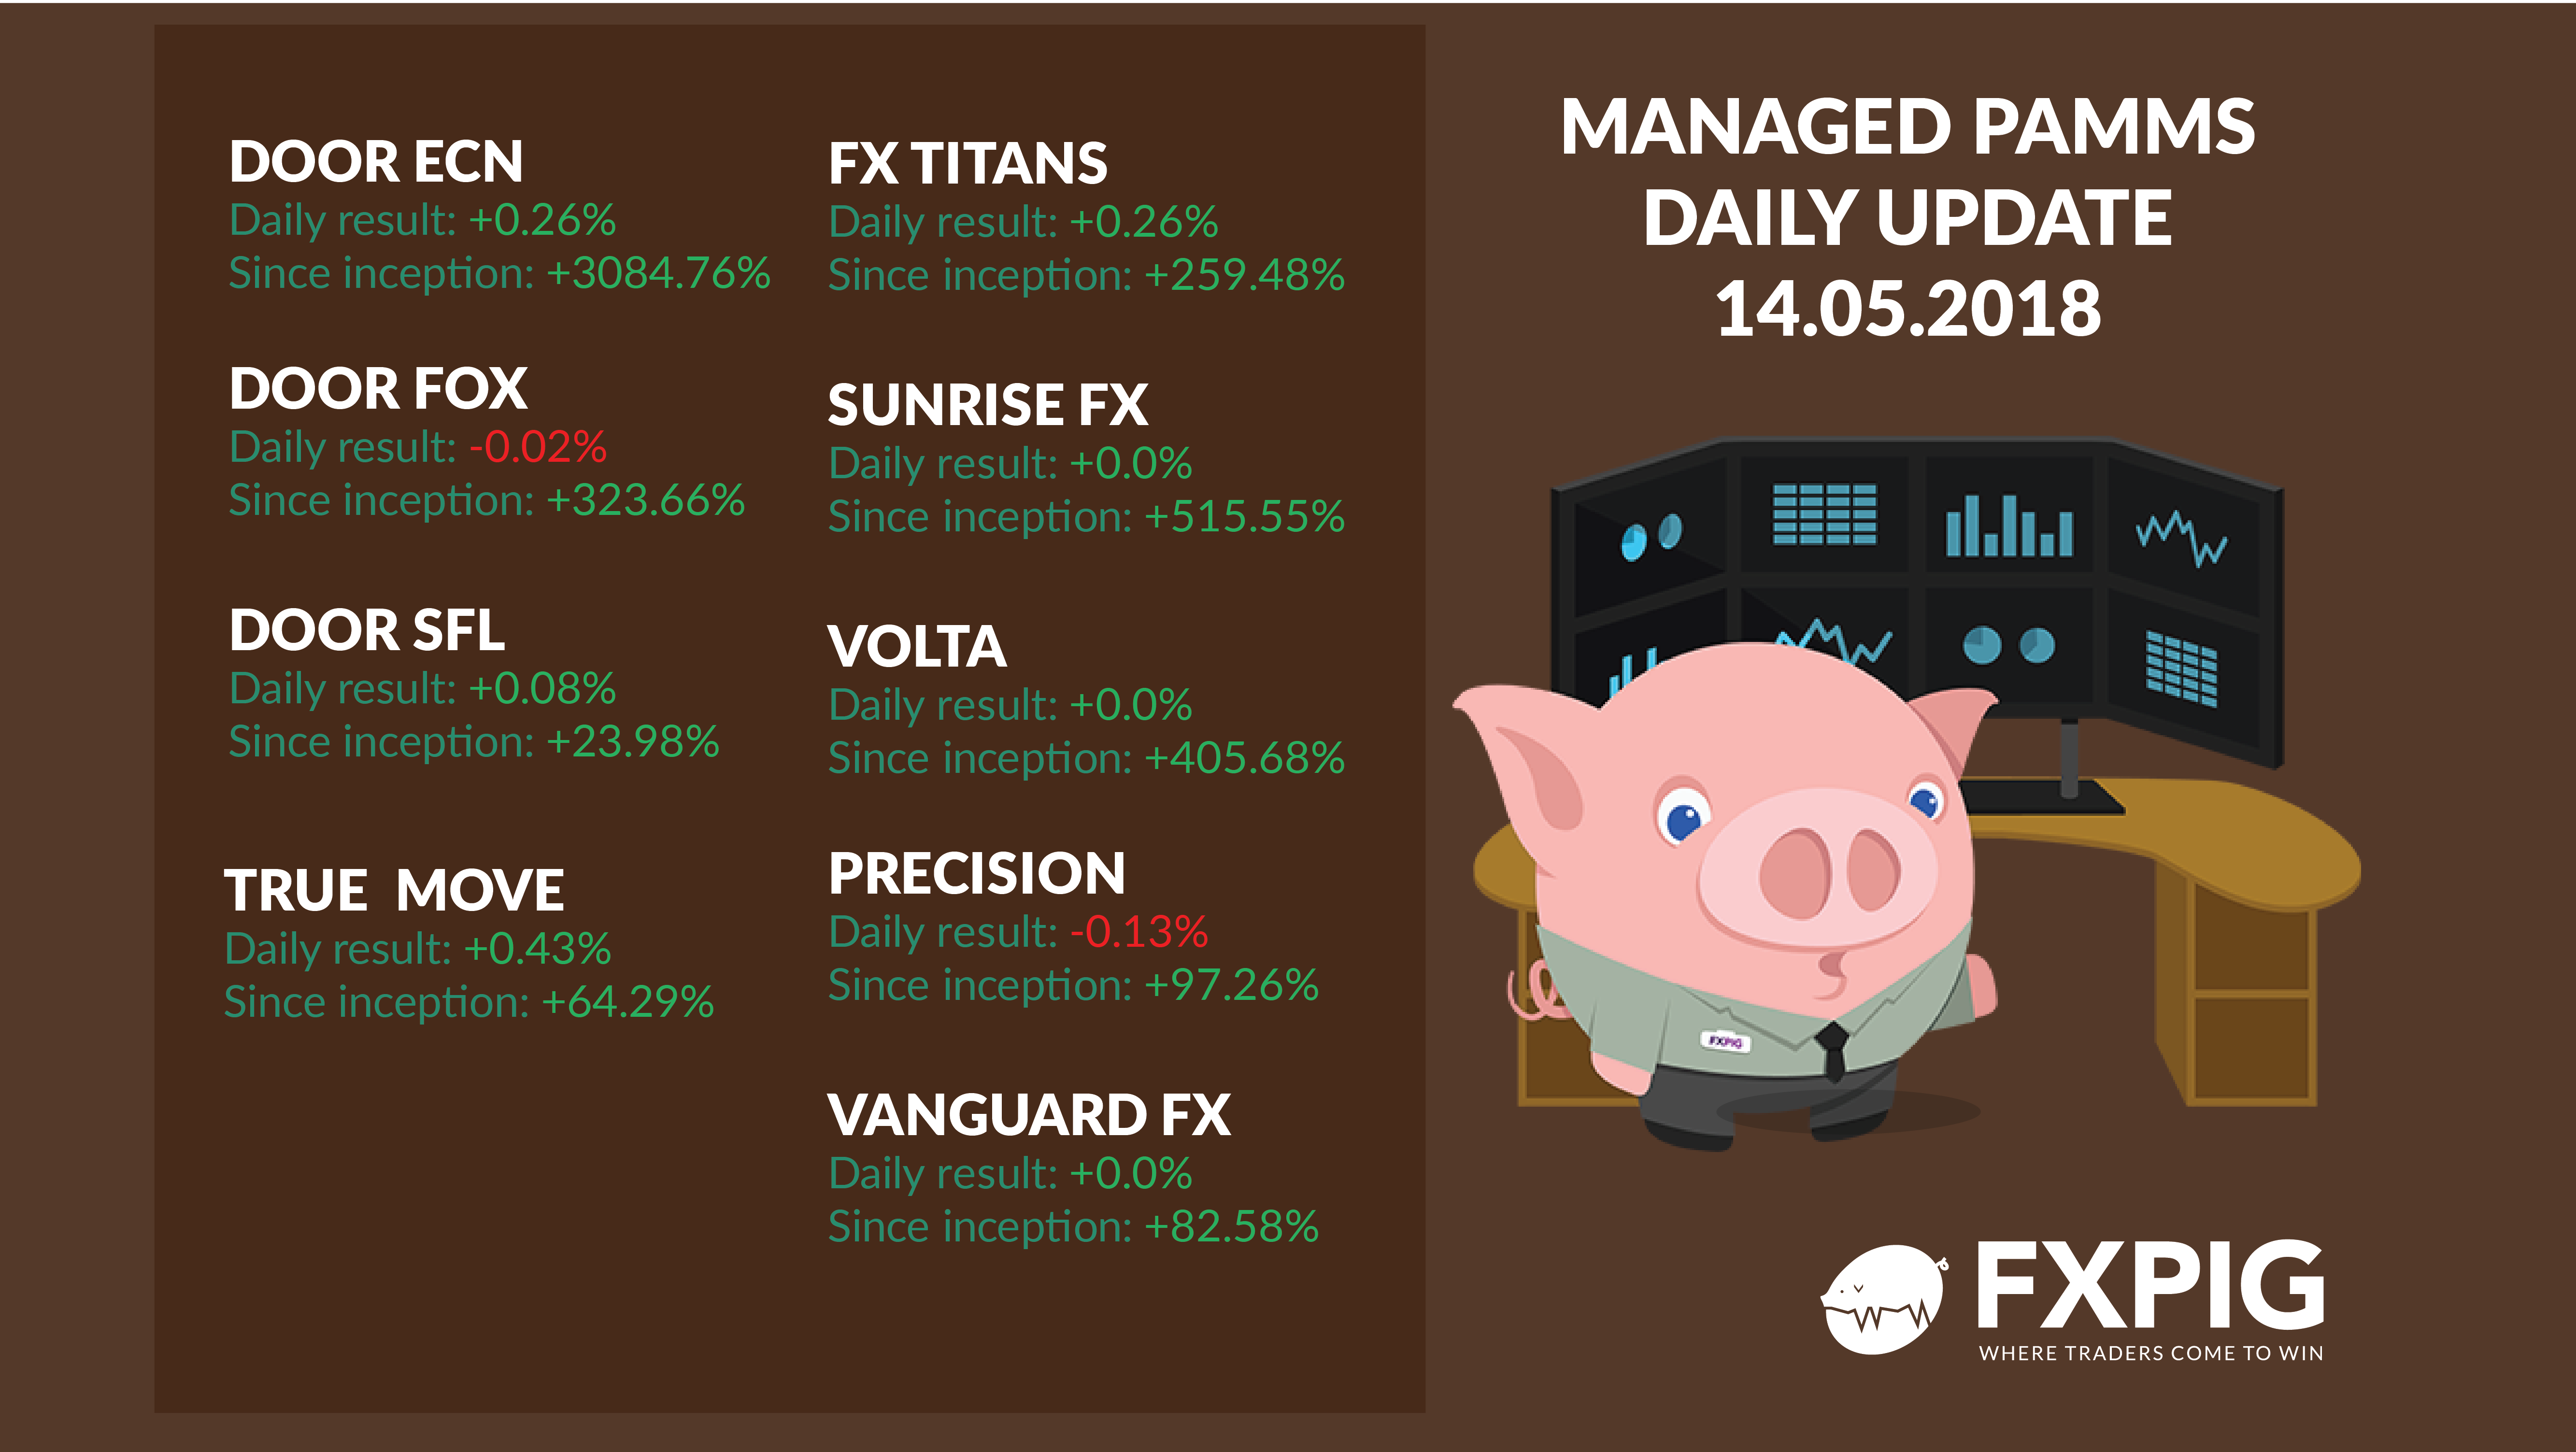 FOREX_Daily-managed-accounts1405_FXPIG